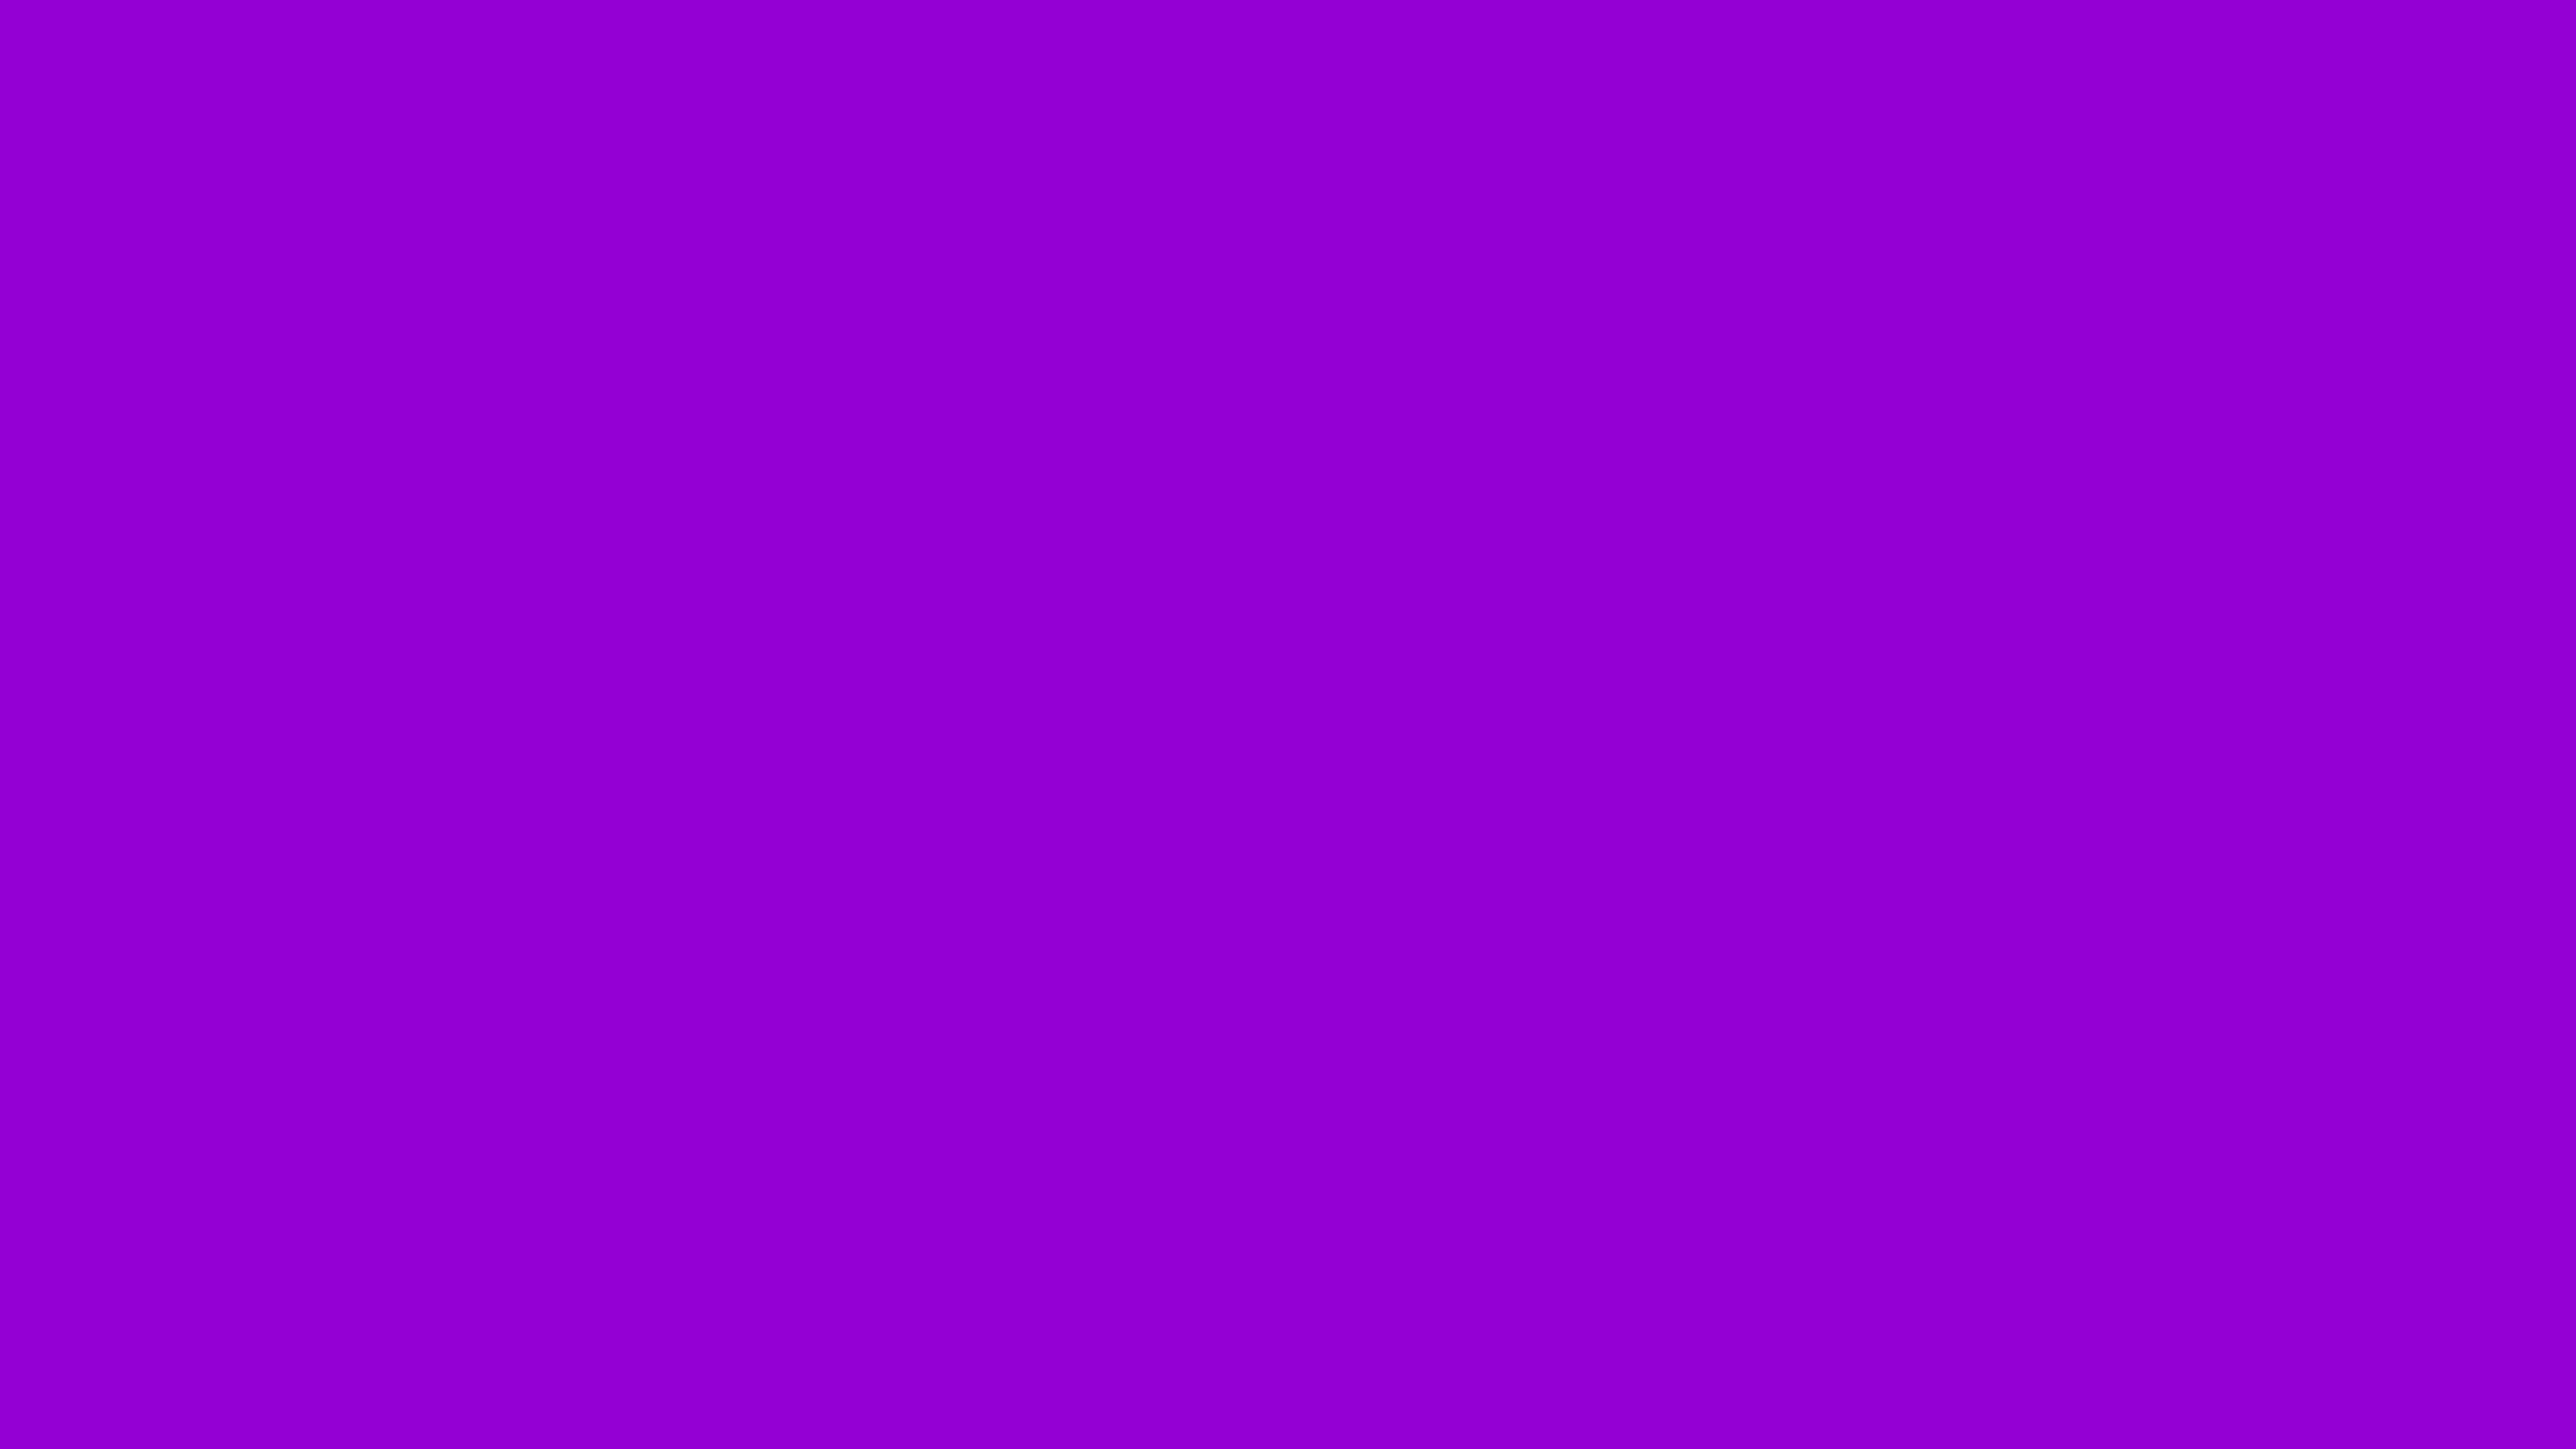 3840x2160 Dark Violet Solid Color Background